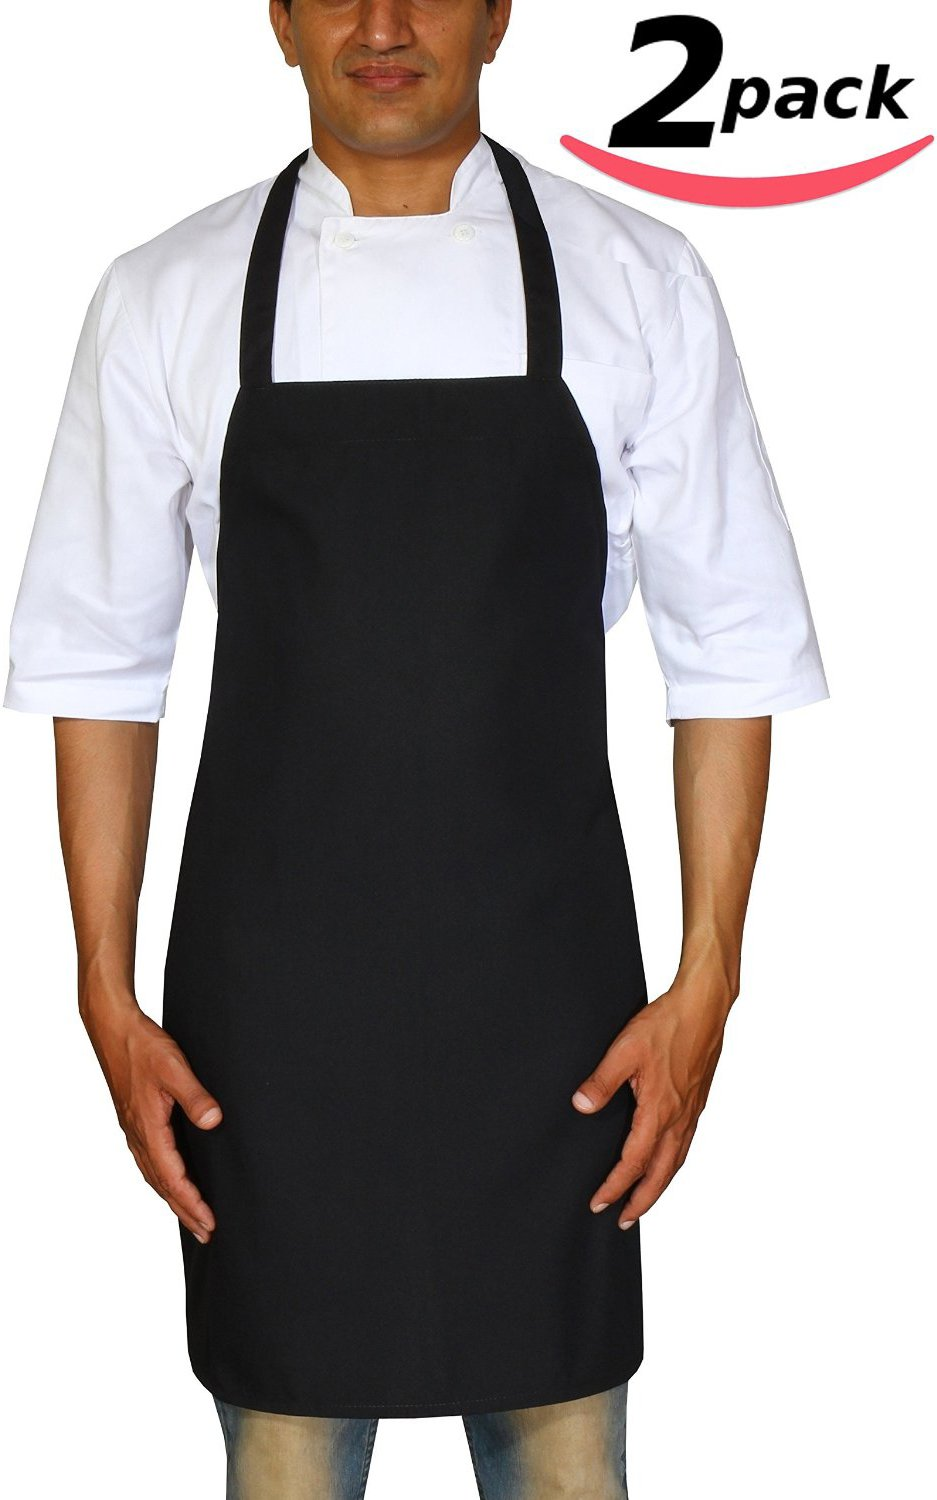 "Bistro-Garden-Craftsmen Professional Bib Apron Black Spun Polyester - Set of 2, Durable, Comfortable, Easy Care, Restaurant Commercial Waitress Waiter Aprons - Black (32"" x 28"") by Utopia Wear"